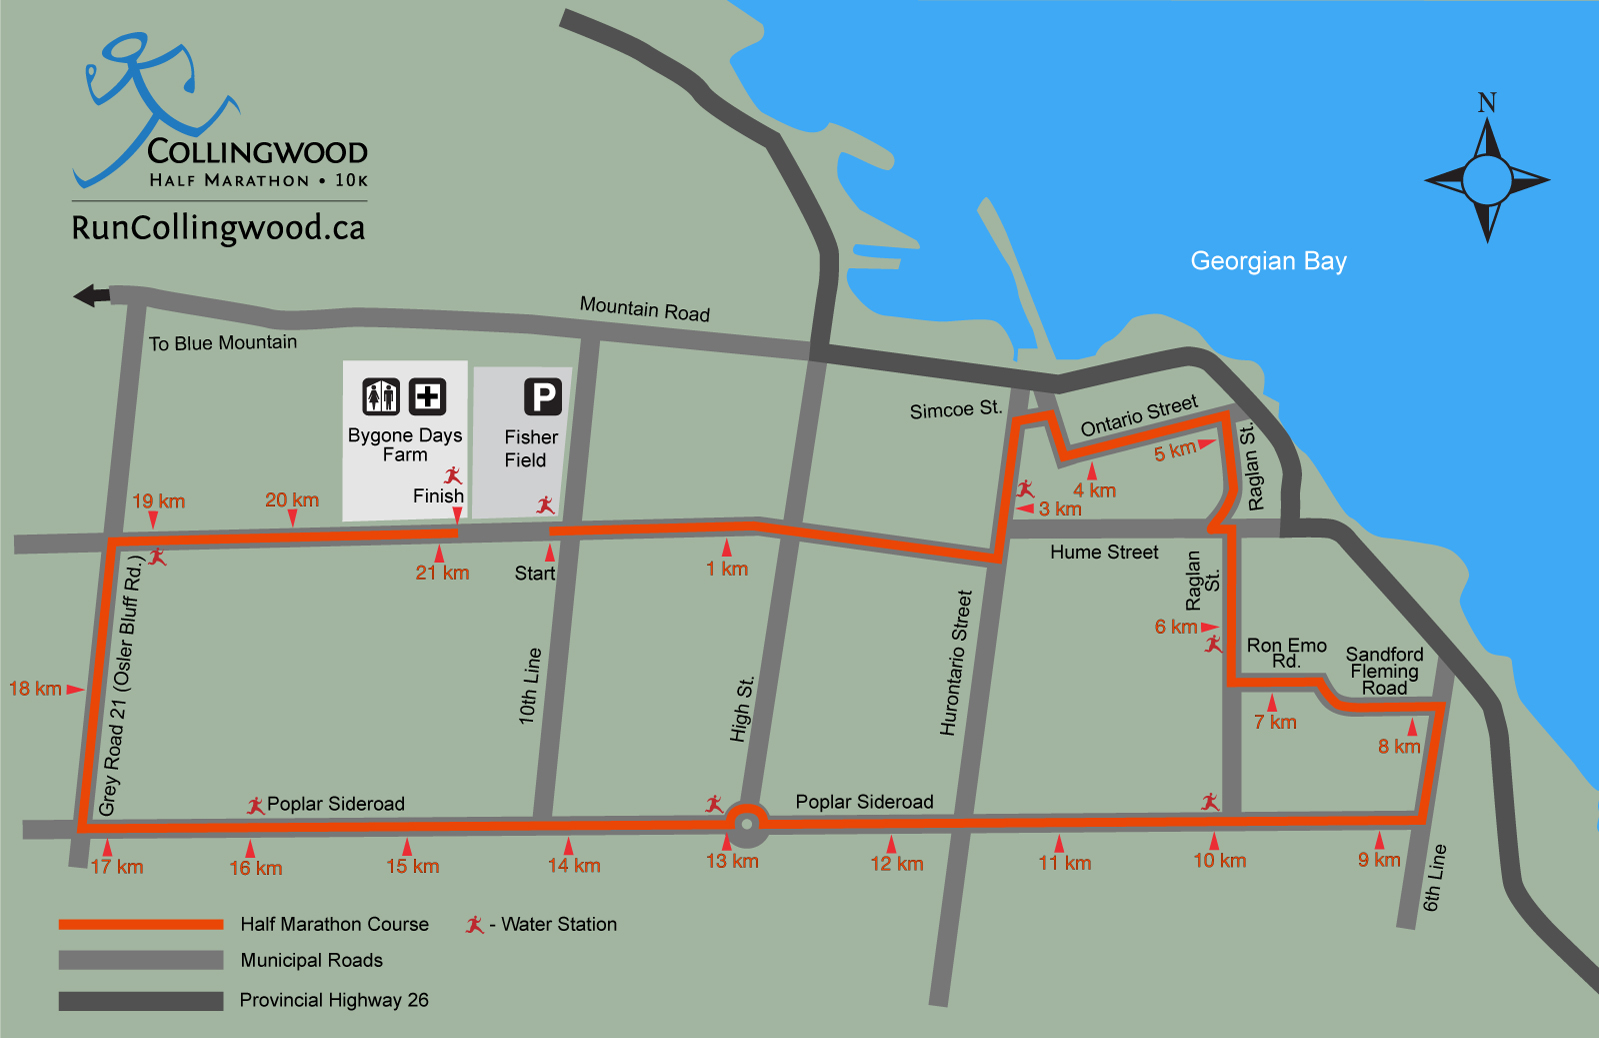 Collingwood half map